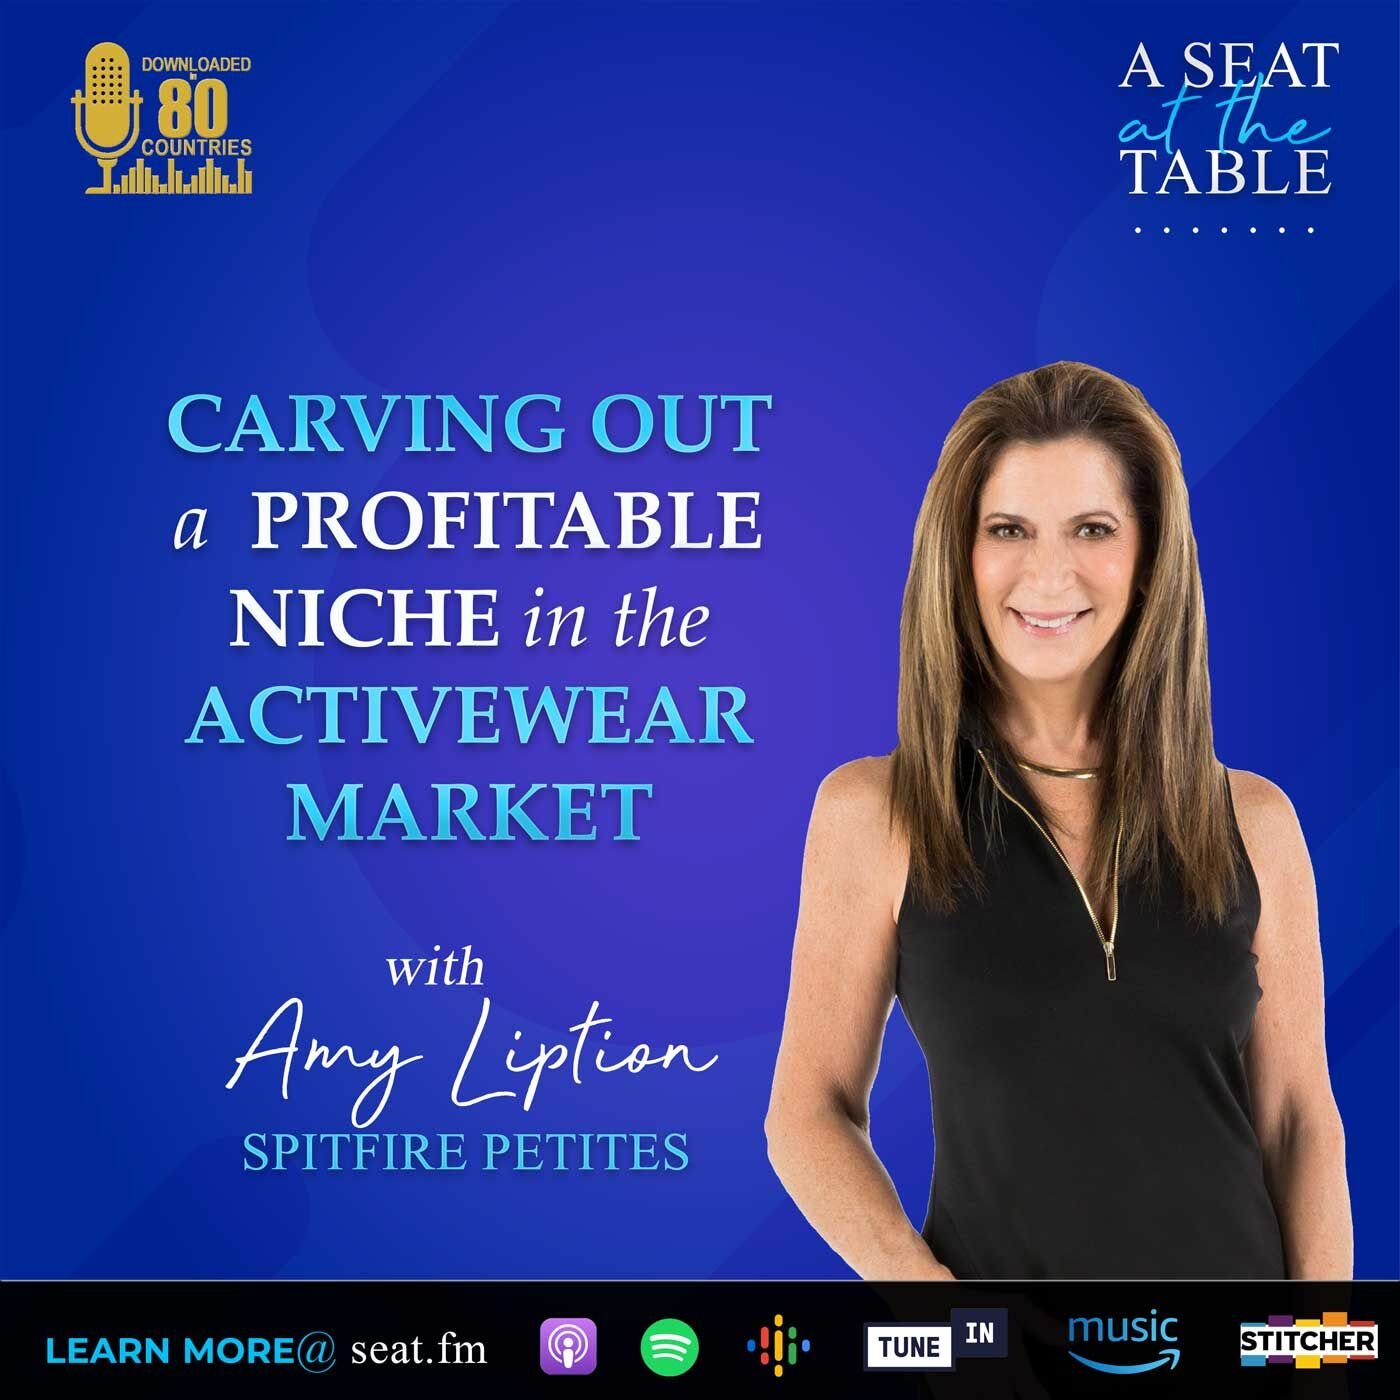 Carving Out a Profitable Niche in the Activewear Market